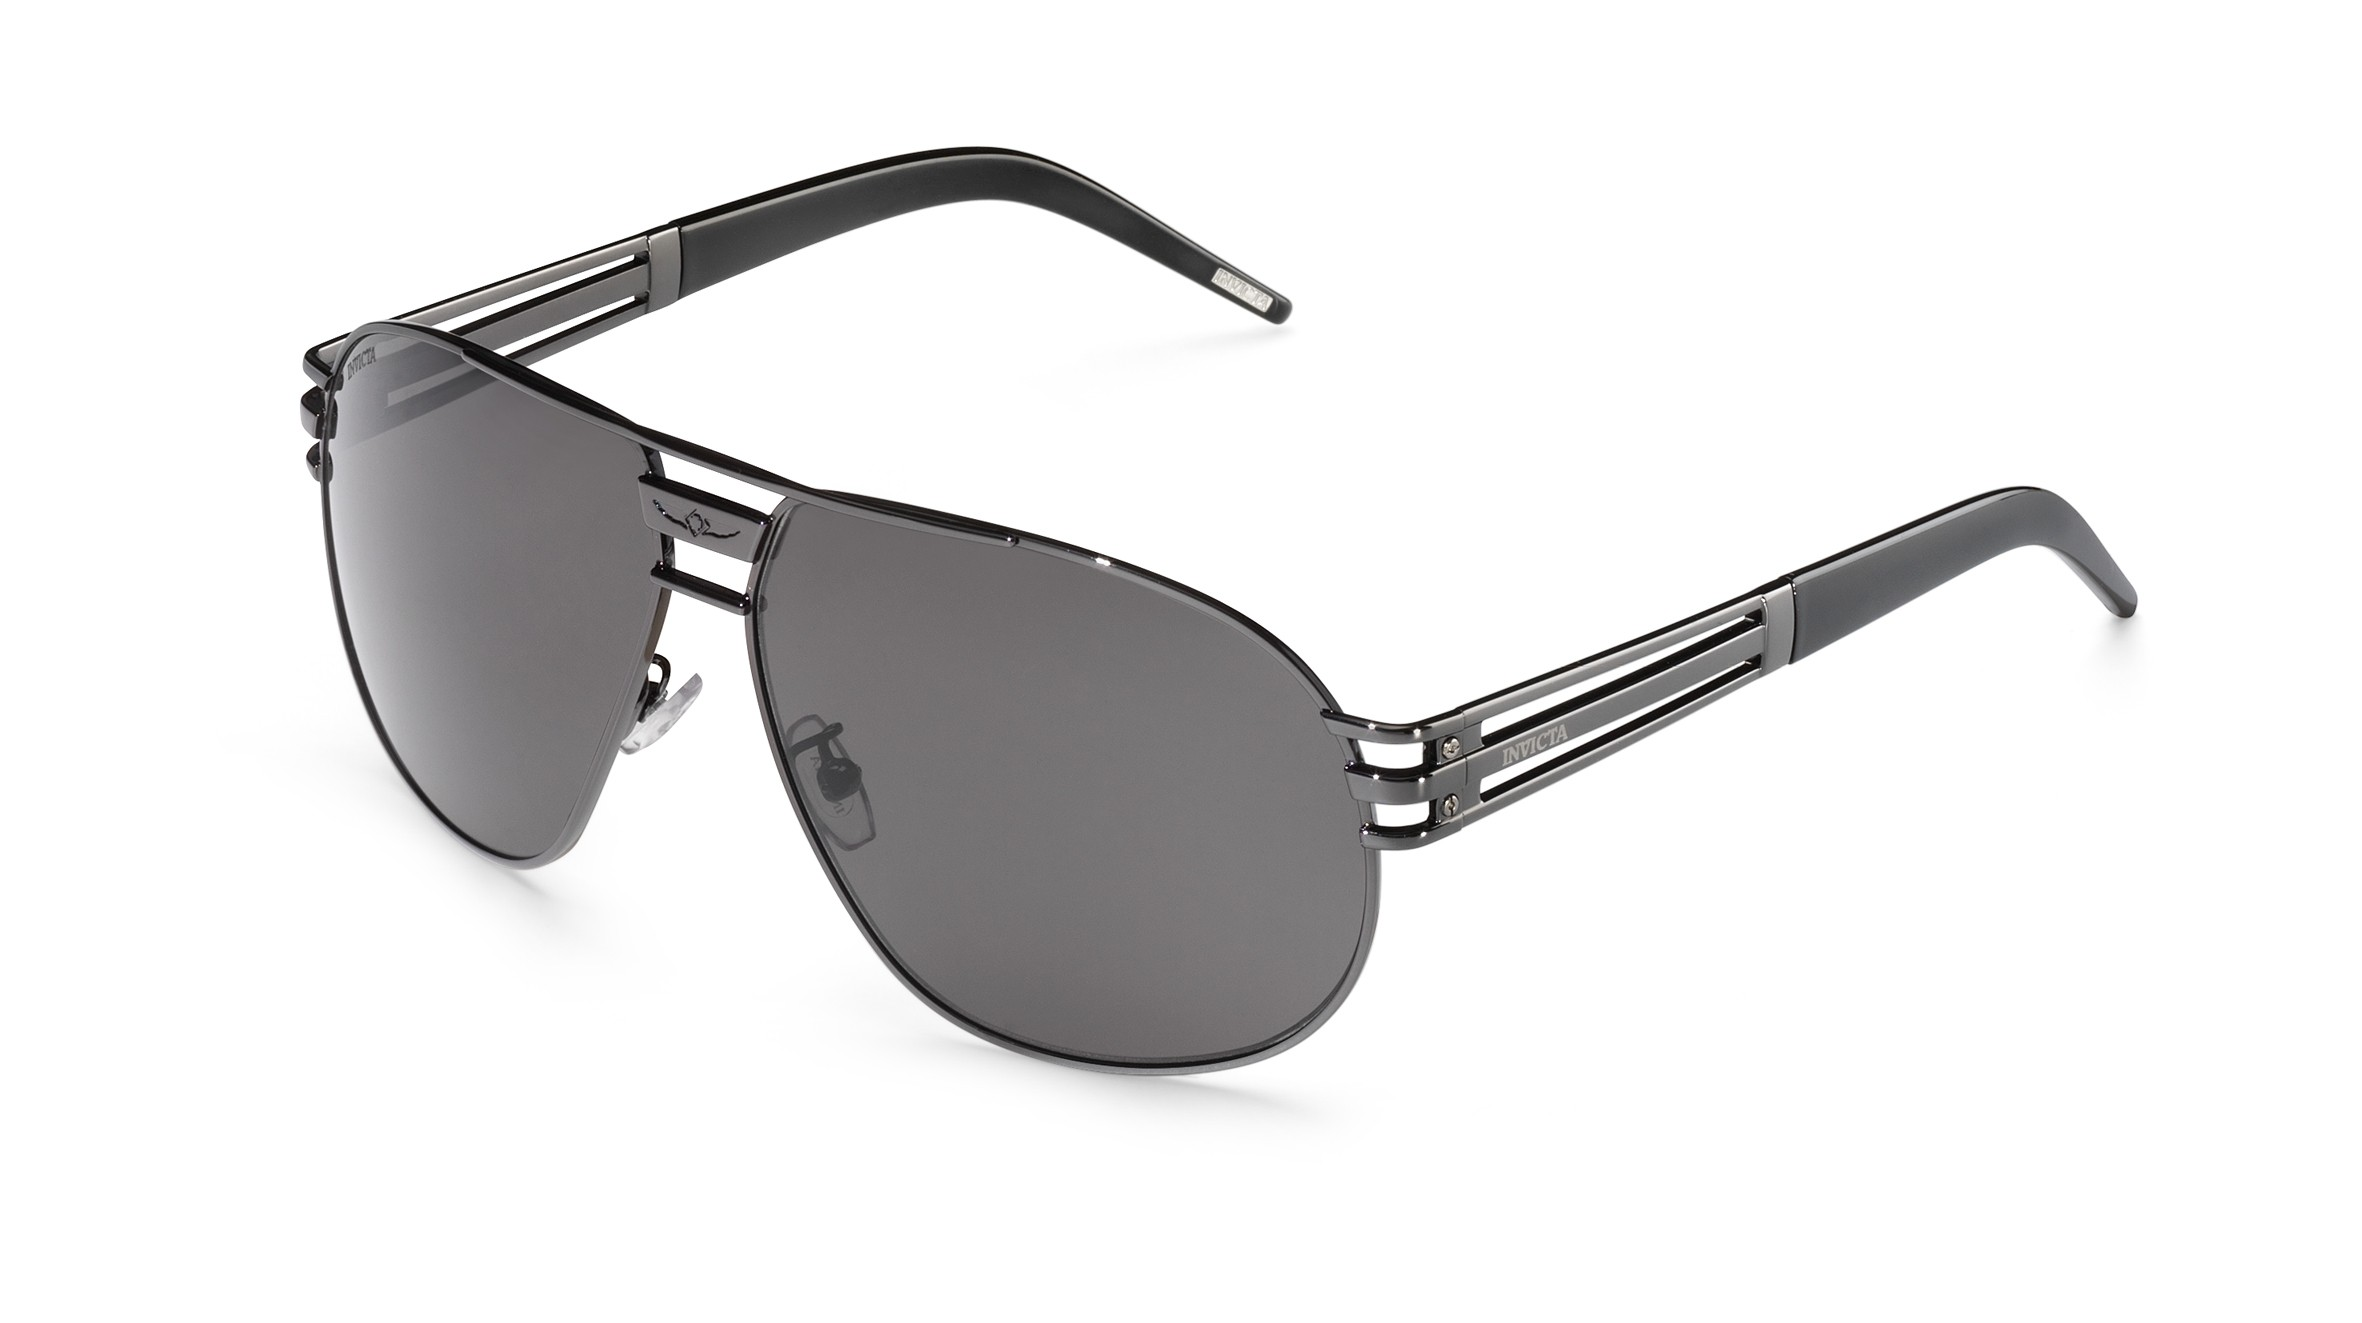 Invicta IEW018 Aviator Sunglasses Your Choice of 5 Colors